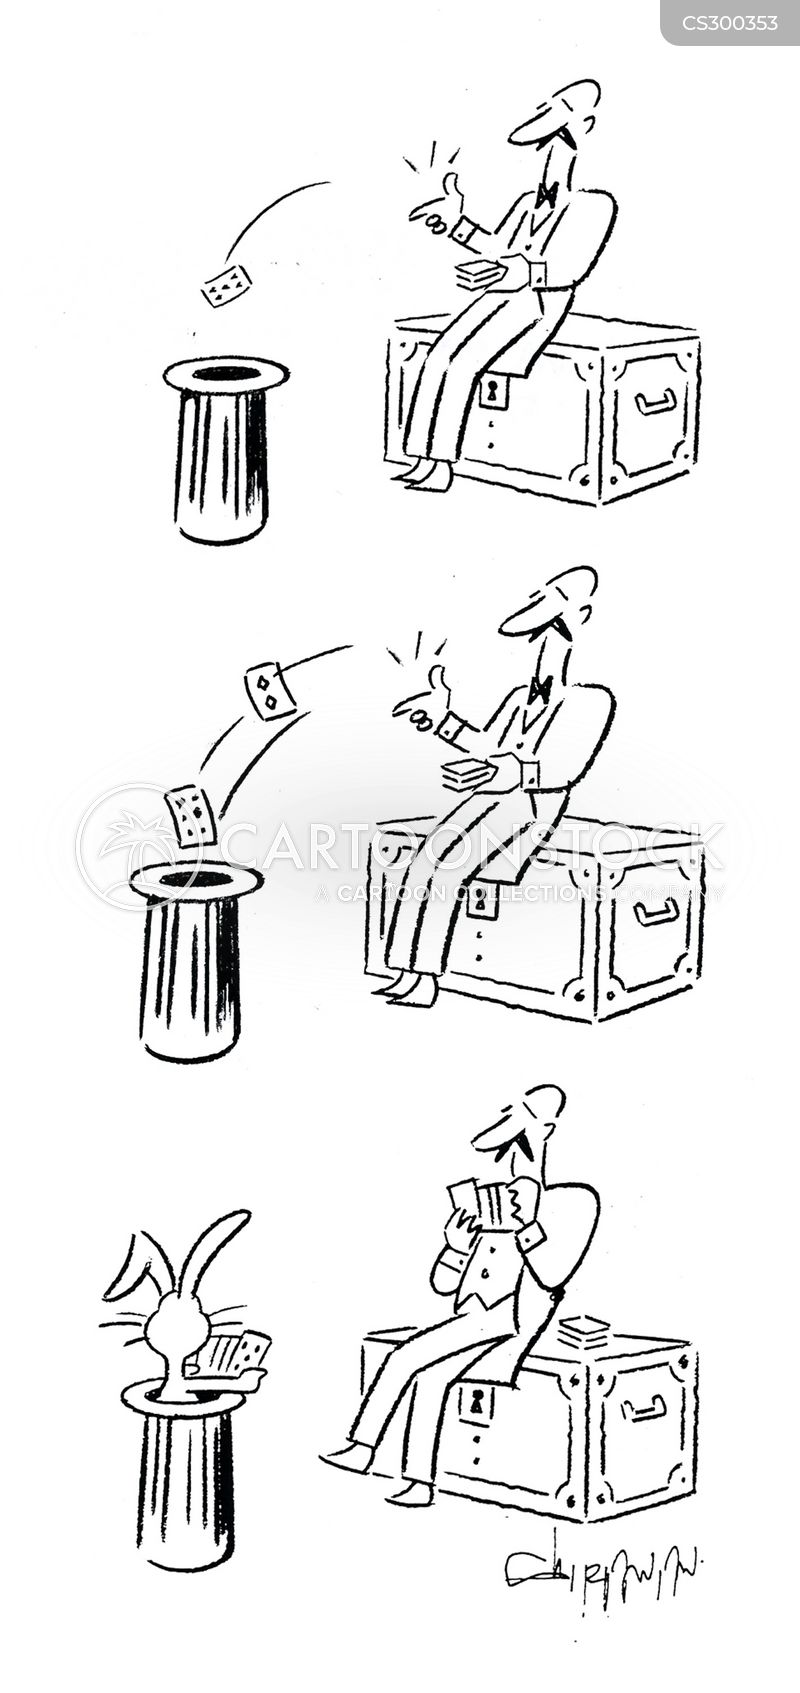 card trick cartoon